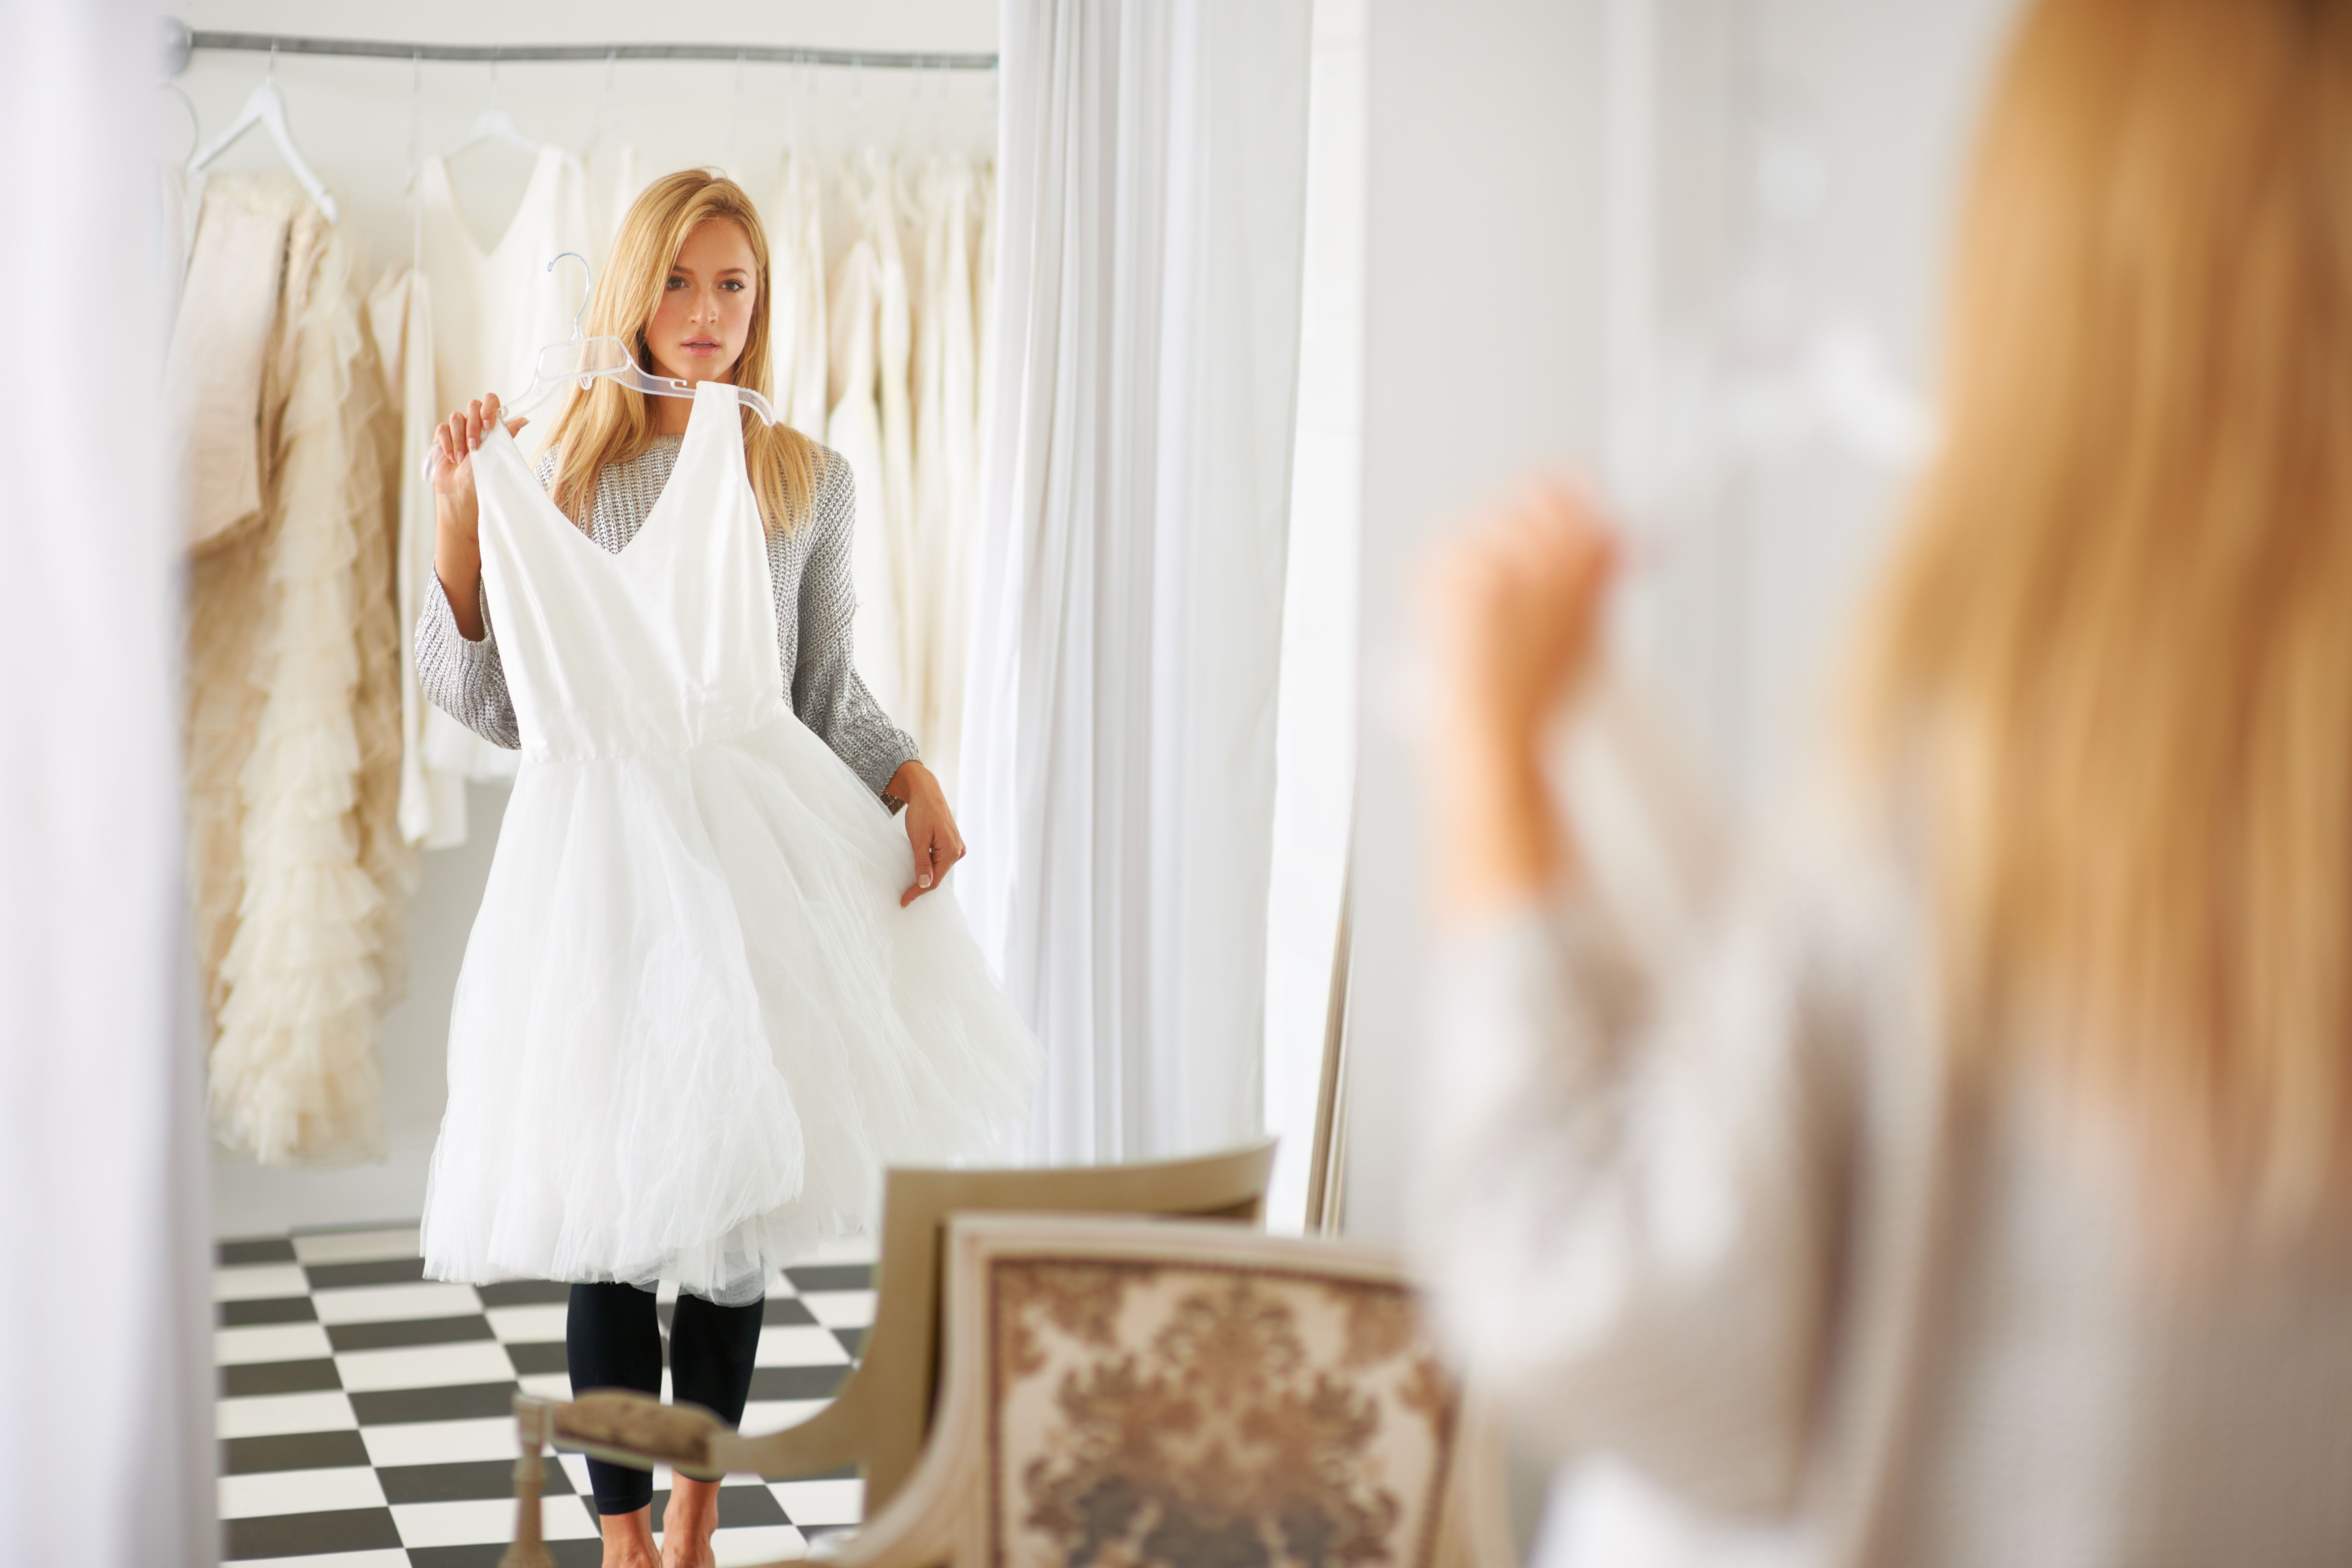 Bride-to-be holding up a possible wedding dress in front of her and looking in a full-length mirror